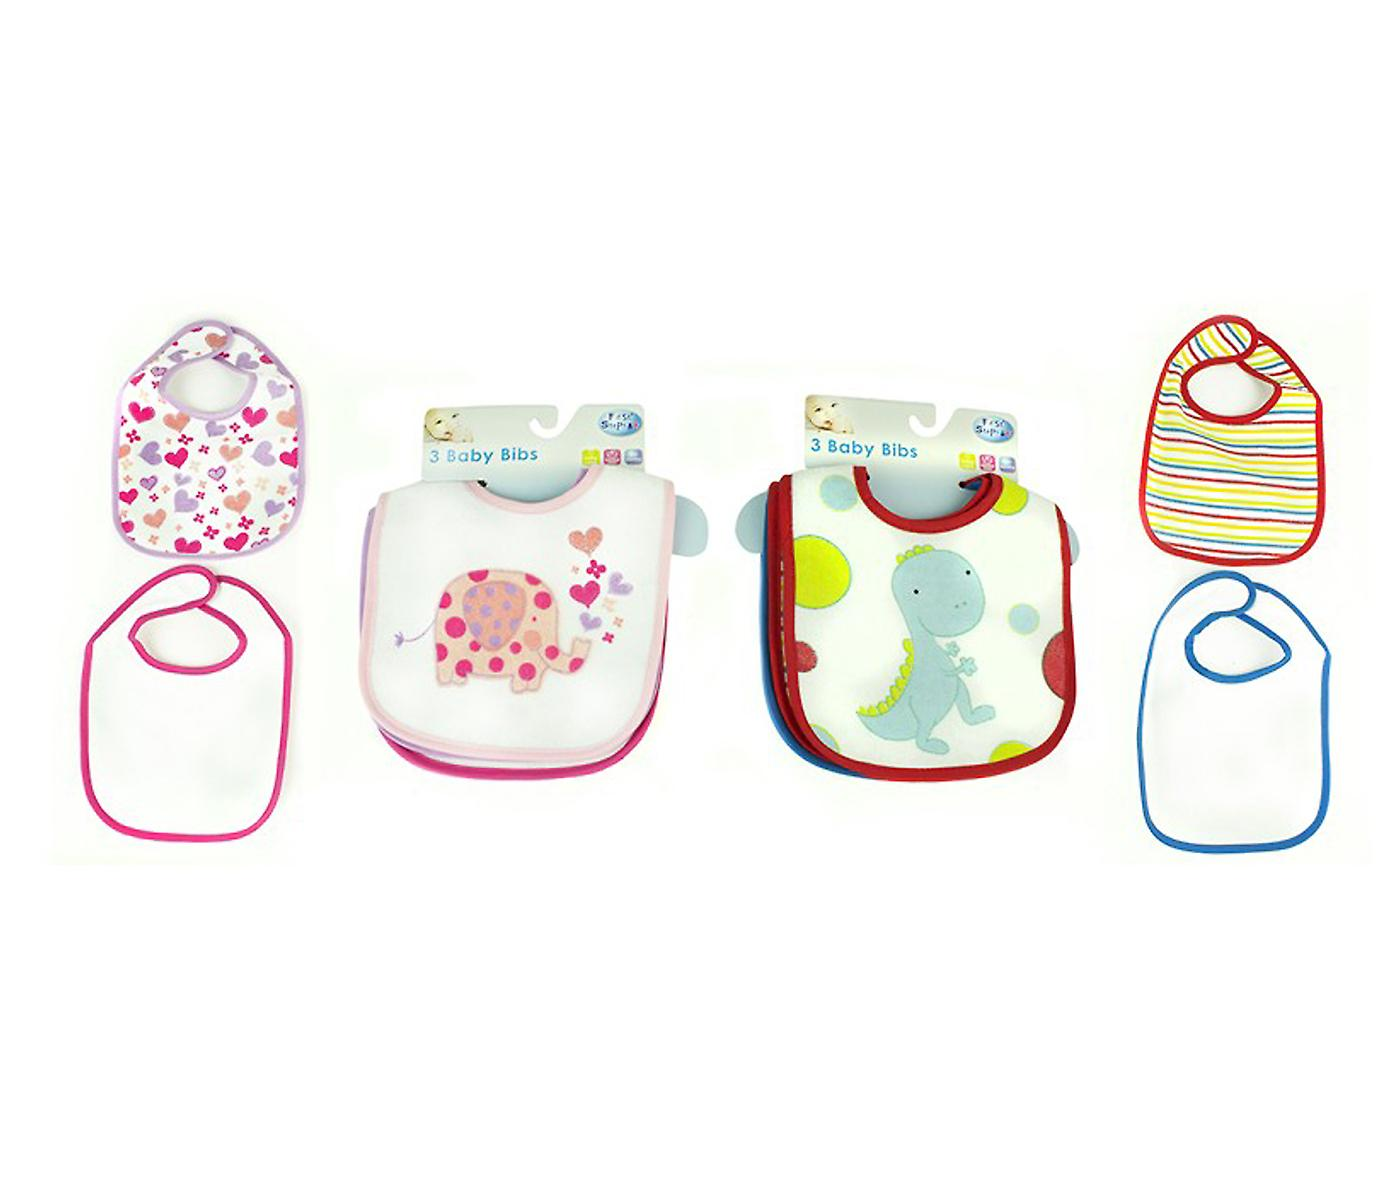 Cotton Baby Bibs Pack of 3 Boys Girls Toddler Feeding Time Machine Washable